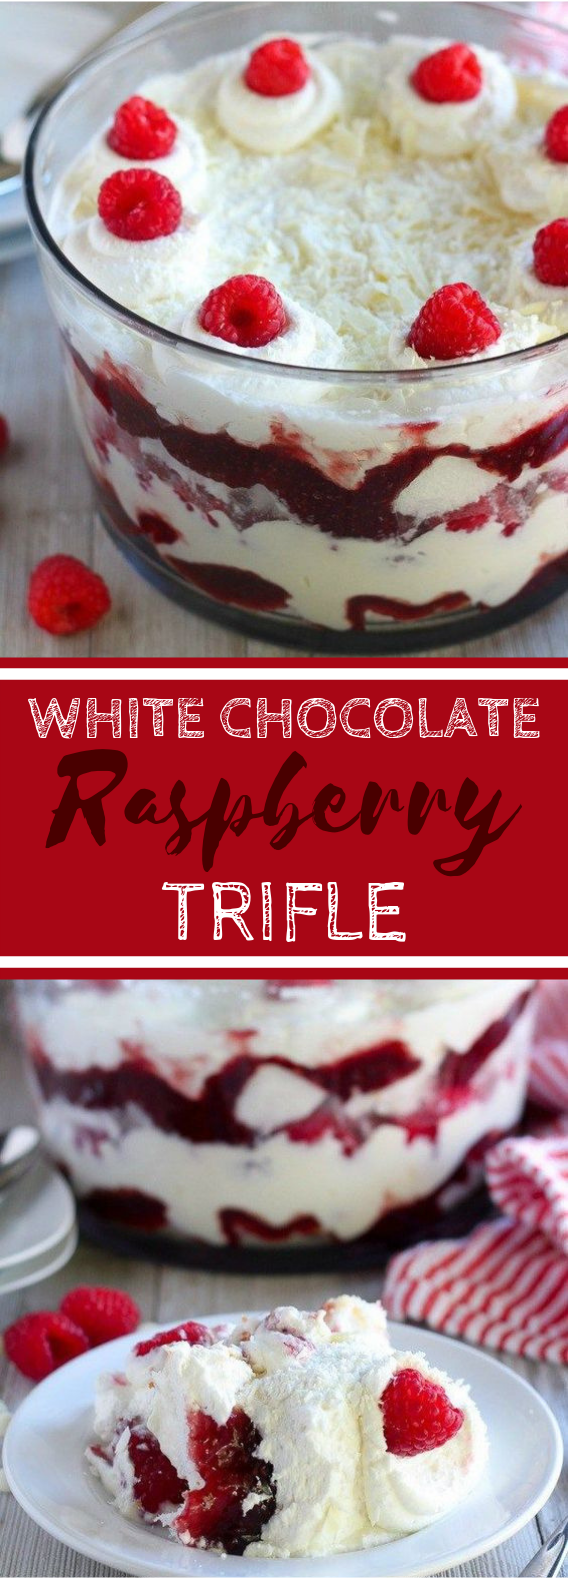 White Chocolate Raspberry Trifle #dessert #chocolate